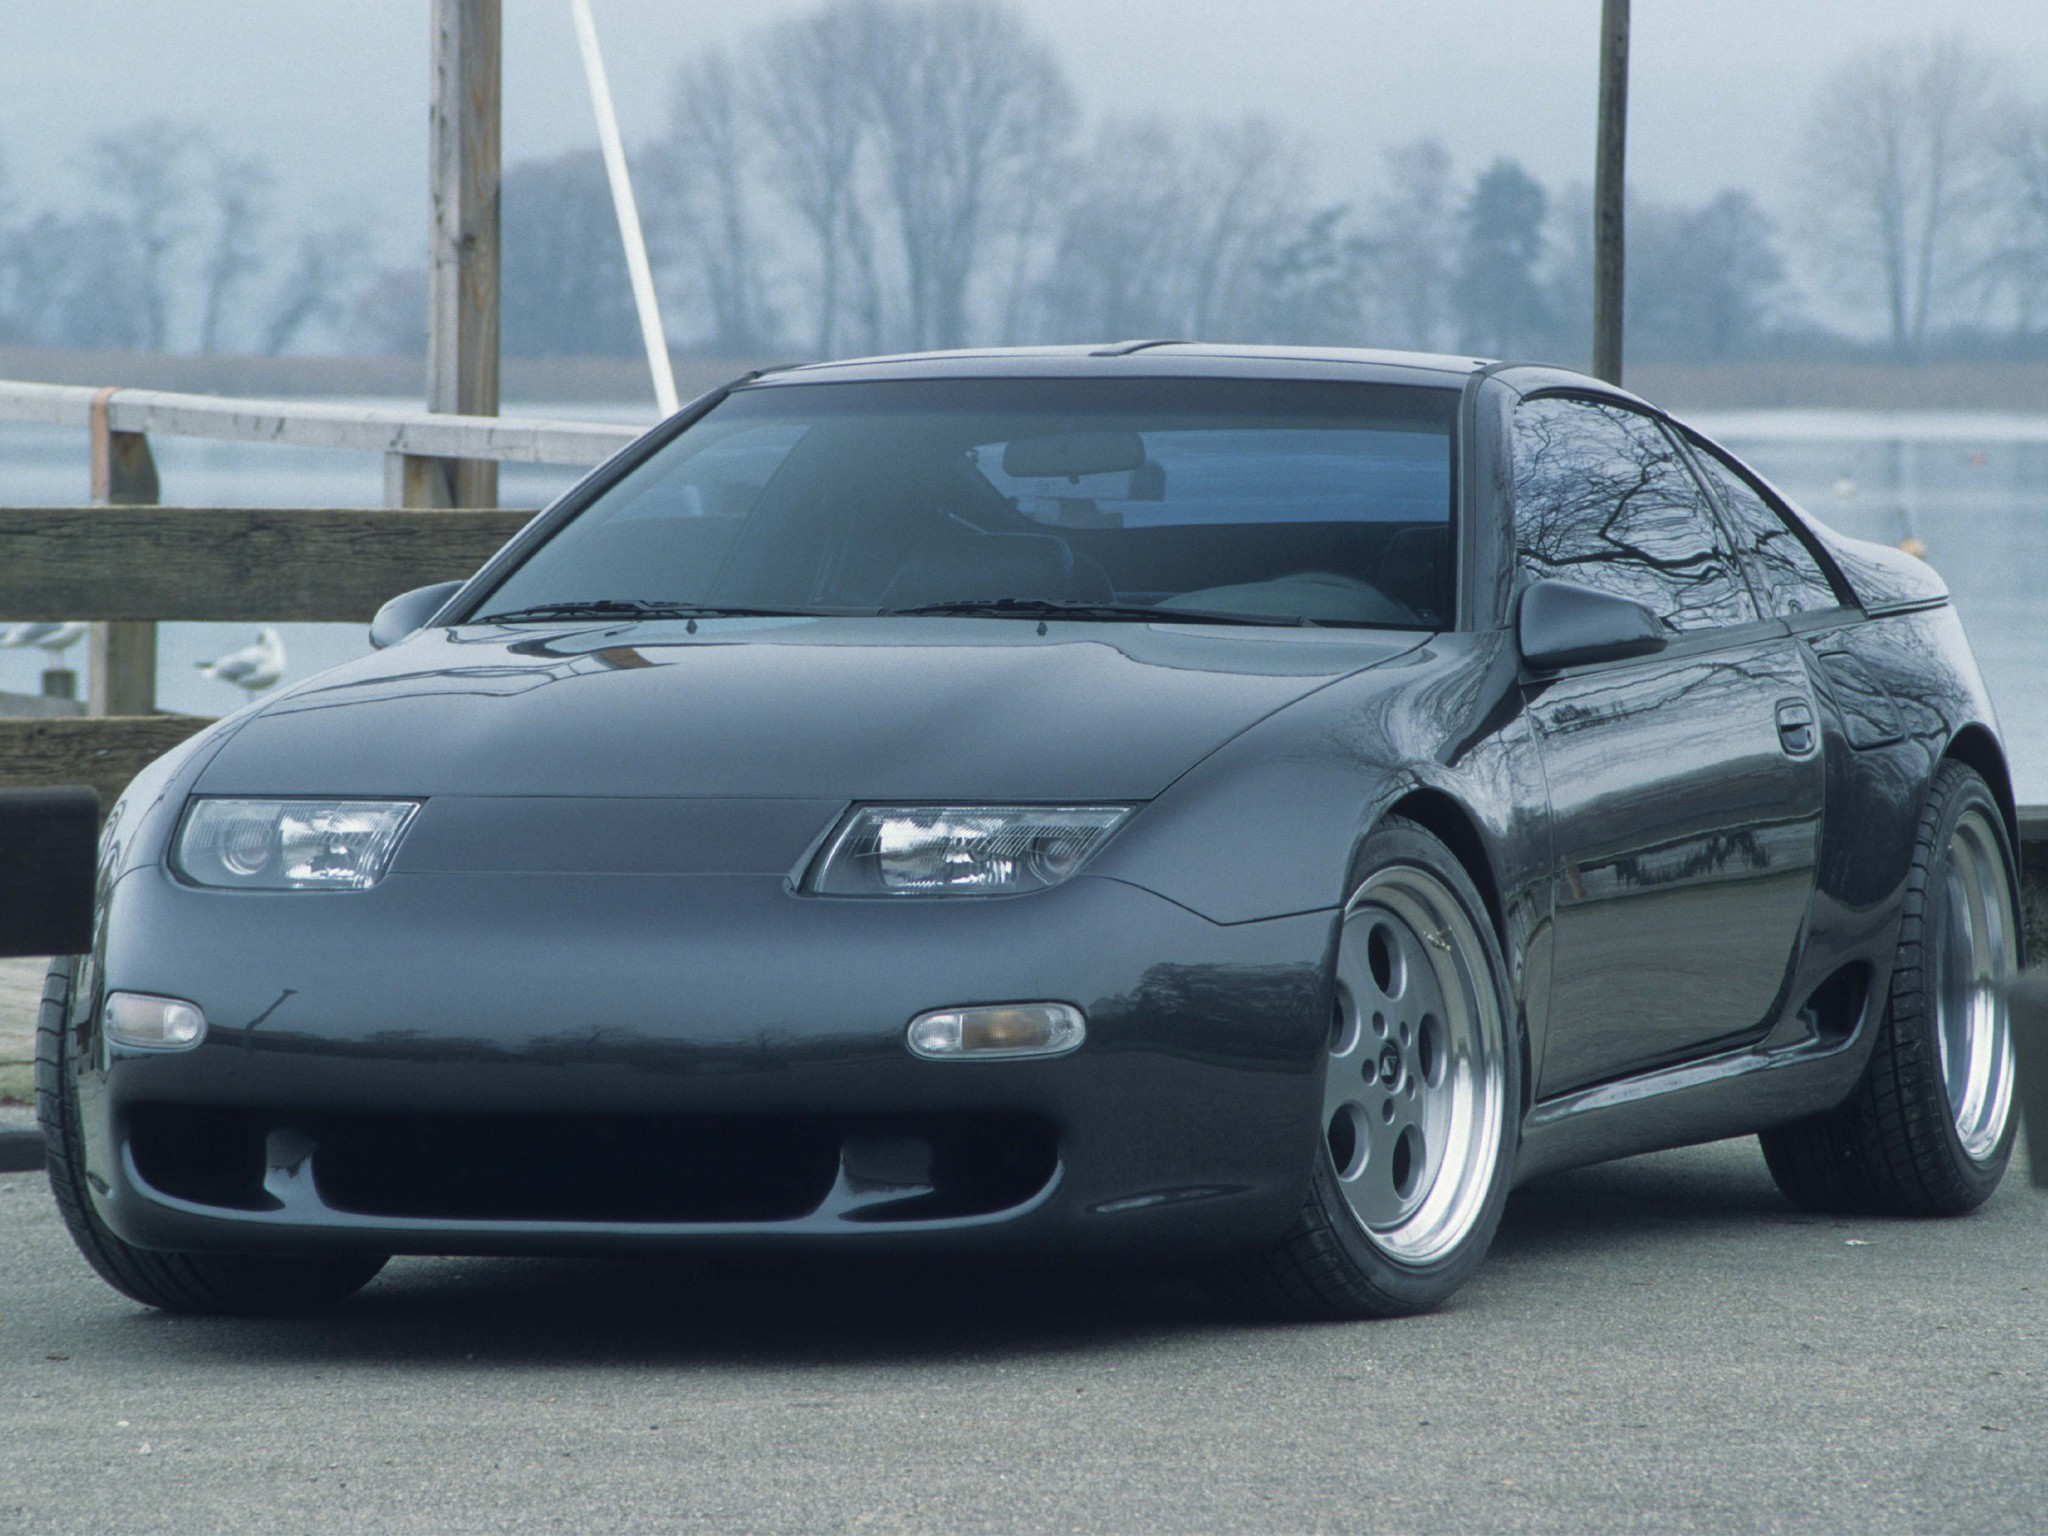 Tesla Model S Specs >> NISSAN 300 ZX specs & photos - 1990, 1991, 1992, 1993, 1994, 1995, 1996 - autoevolution